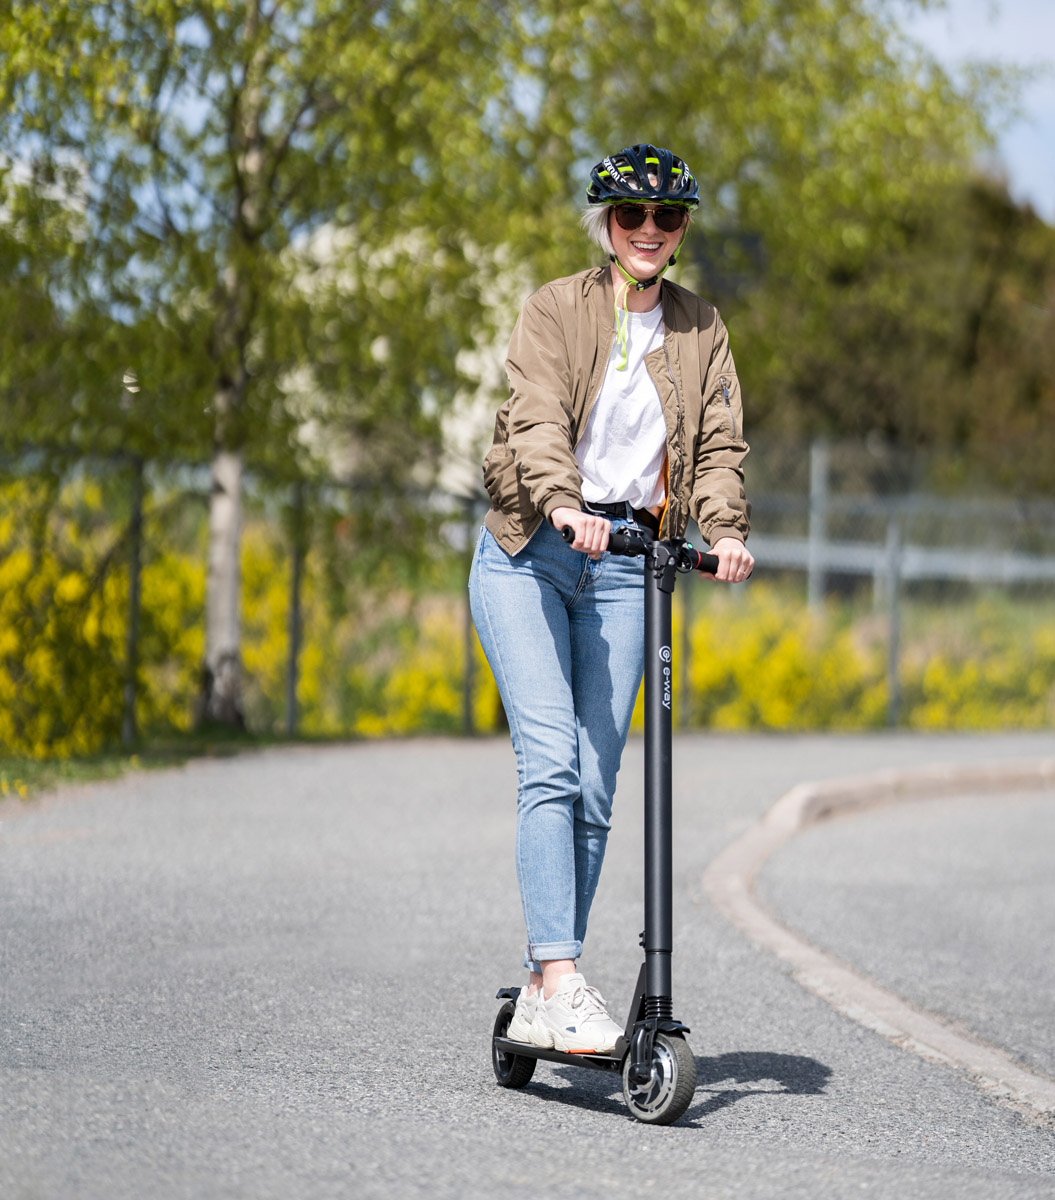 Electric-scooter-Eway_E1-downhill_web.jpg